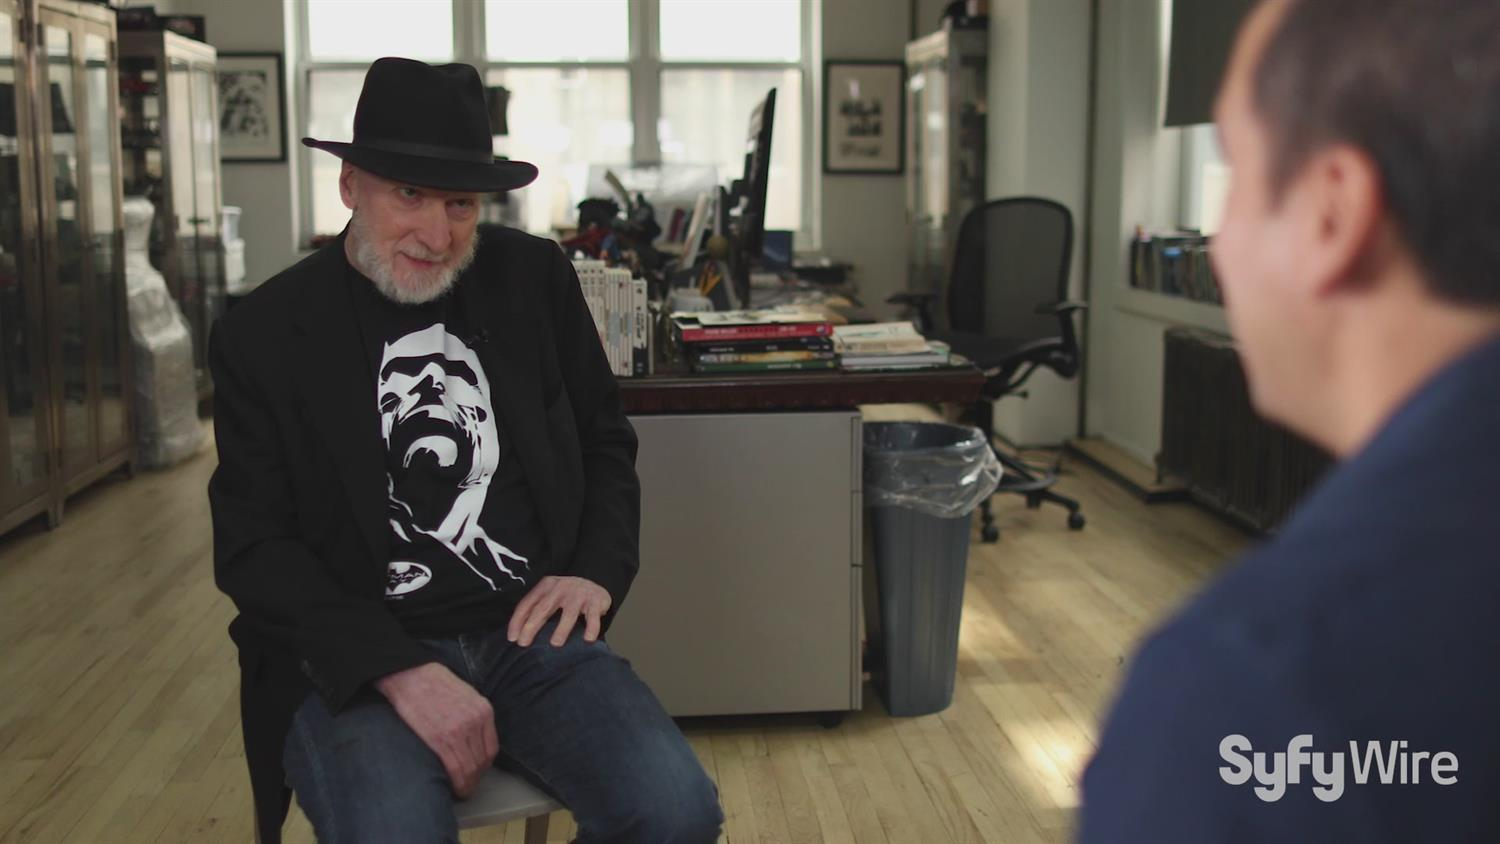 Frank Miller on The Dark Knight III, The Dark Knight Legacy and More